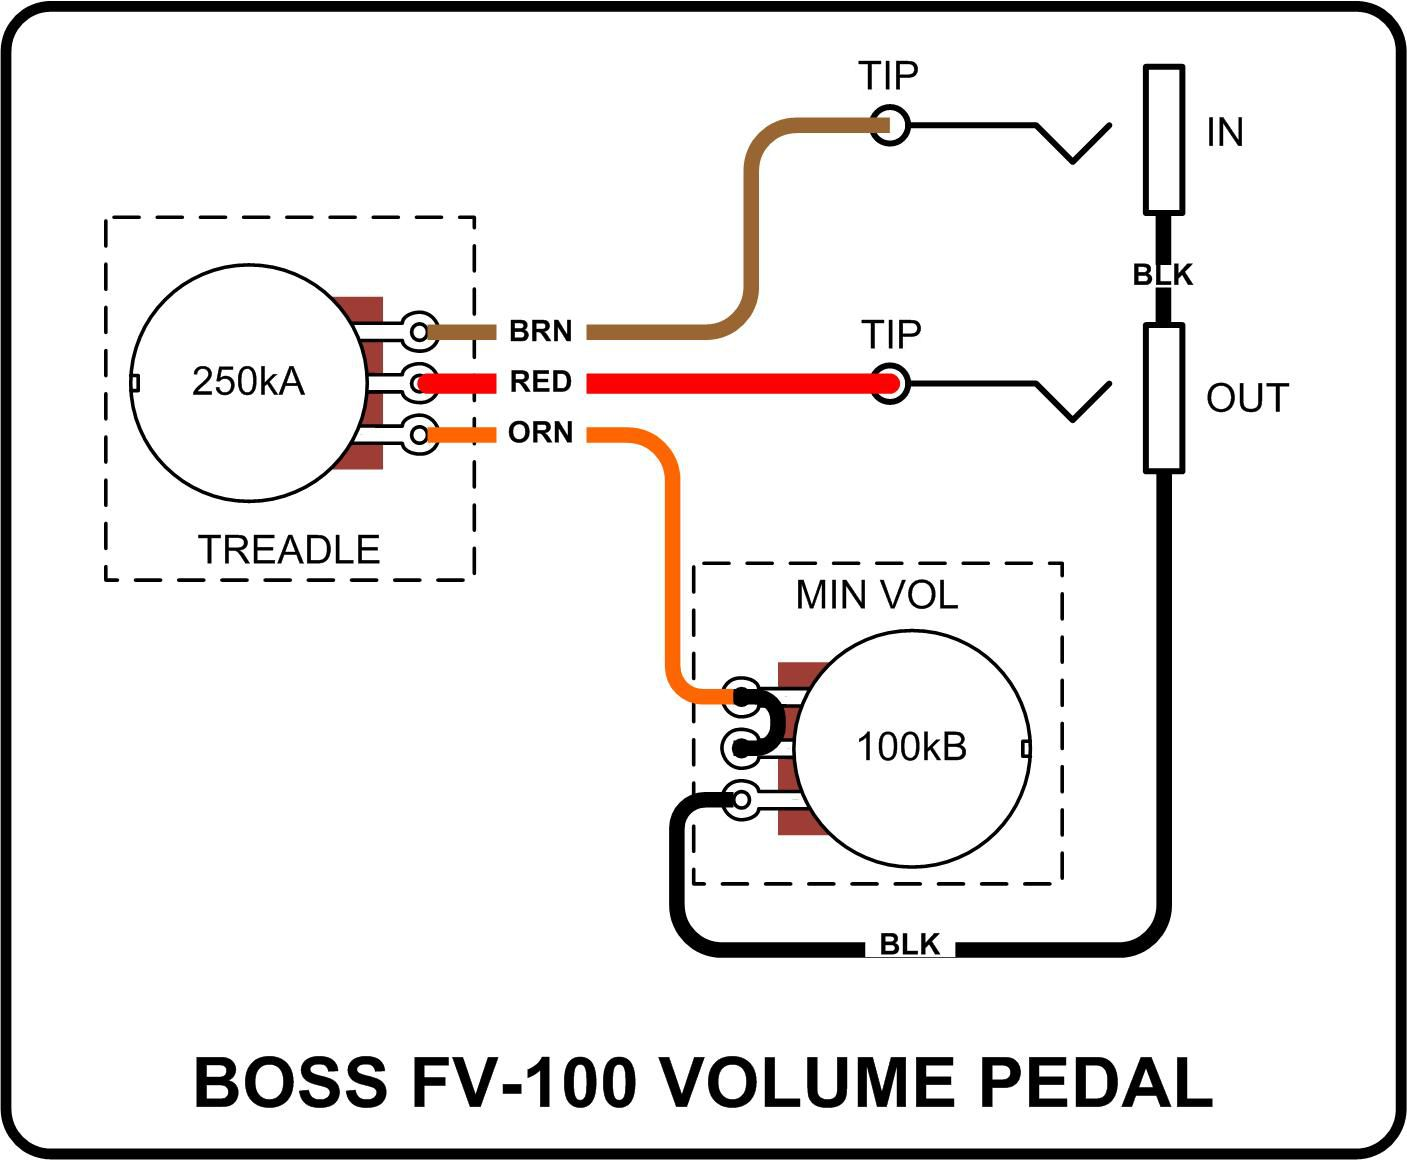 basic wiring diagrams with Volume Pedal Wiring Diagram on Pt2399 Digital Delay Analog Echo as well Manual Kit Portero City Classic 4 L Ref 06335 additionally Volume Pedal Wiring Diagram moreover Eaton Auto Shift Wiring Diagram in addition Intro To Electrical Diagrams.